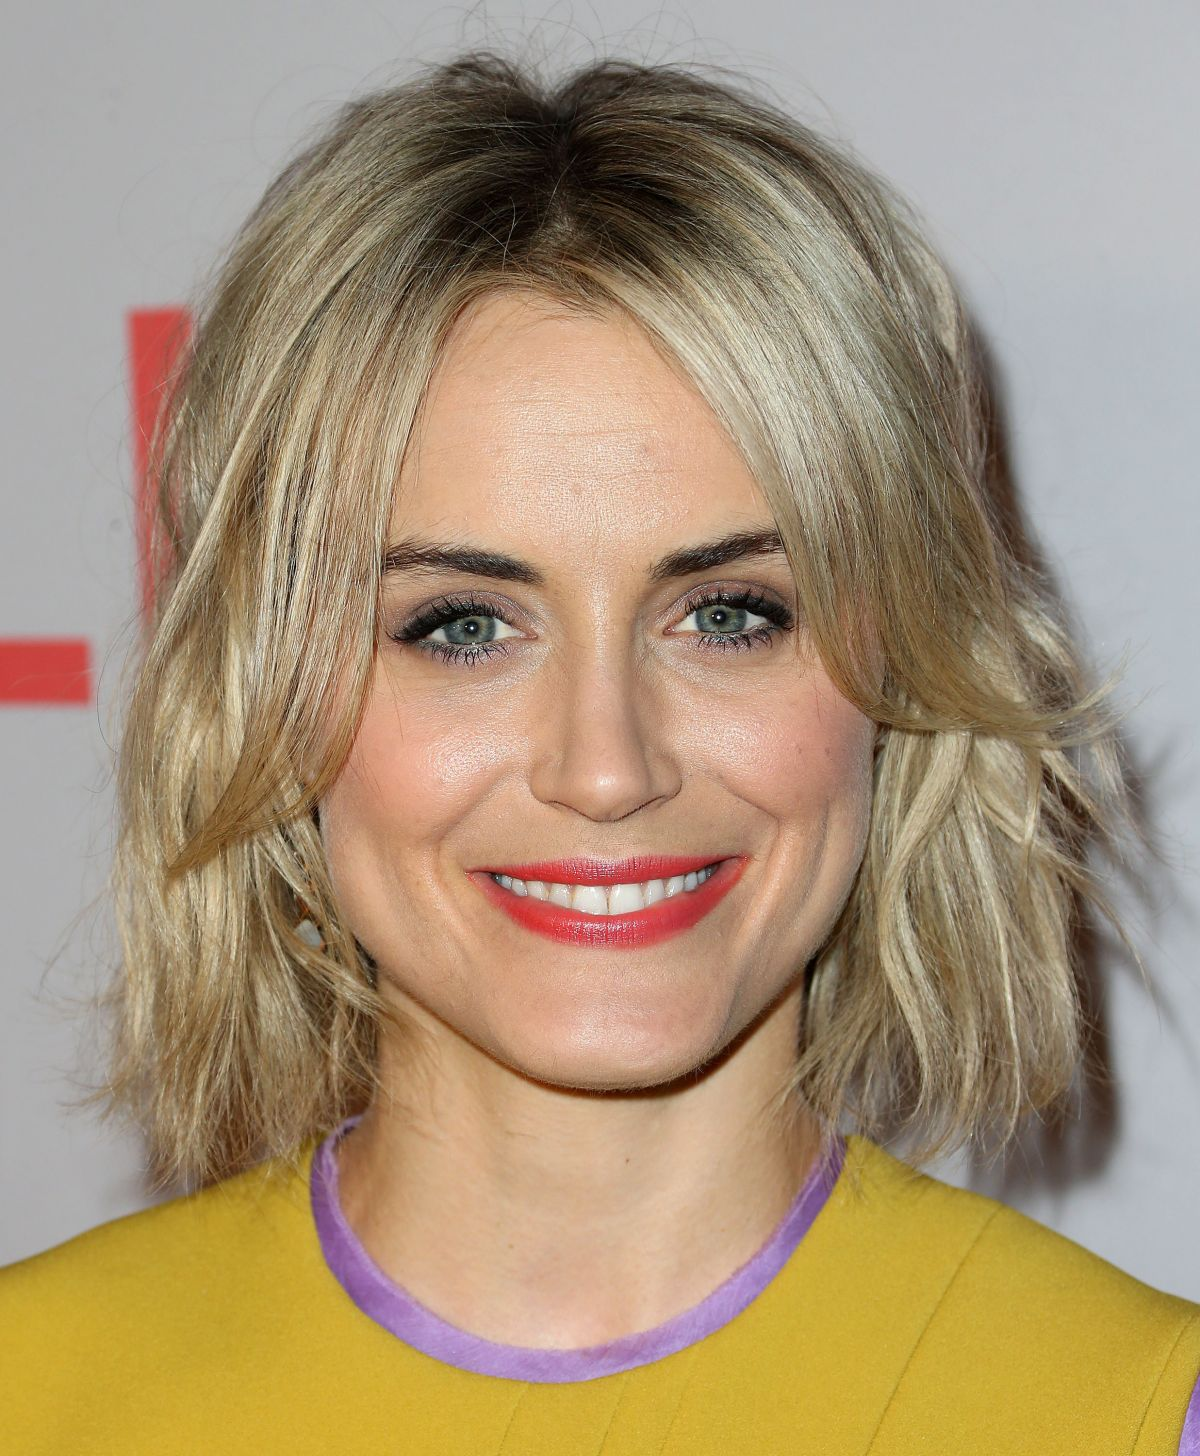 TAYLOR SCHILLING at Orange is the New Black Screening in ...Taylor Schilling Age